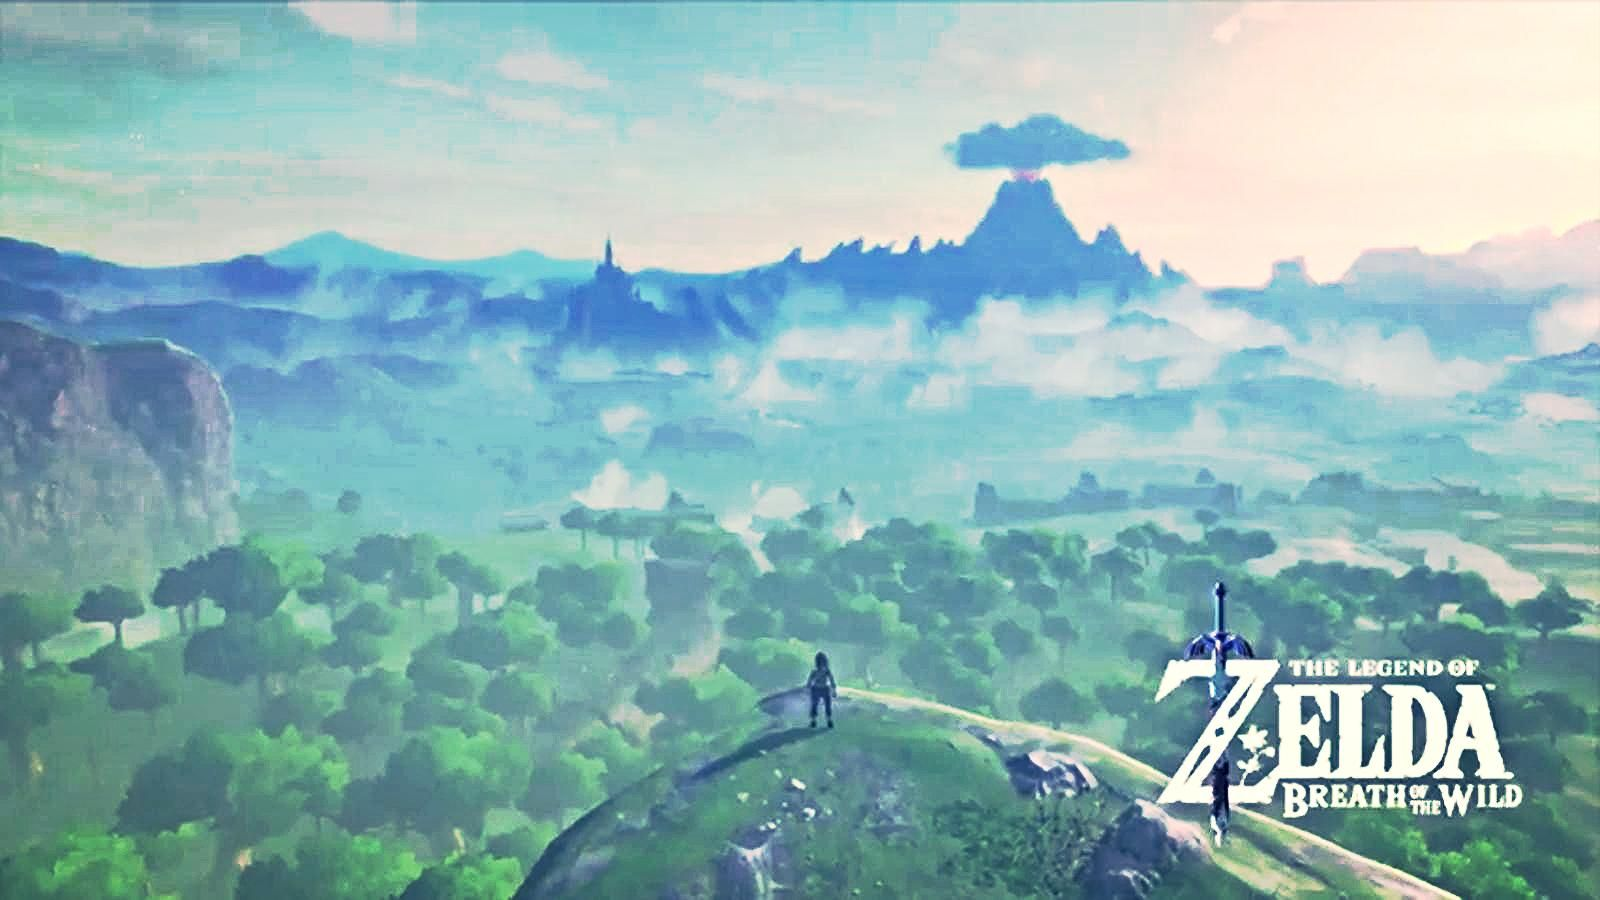 The Legend Of Zelda Breath Of The Wild Hd Wallpaper 6 1600 X 900 Stmed Net Breath Of The Wild Legend Of Zelda Background Images